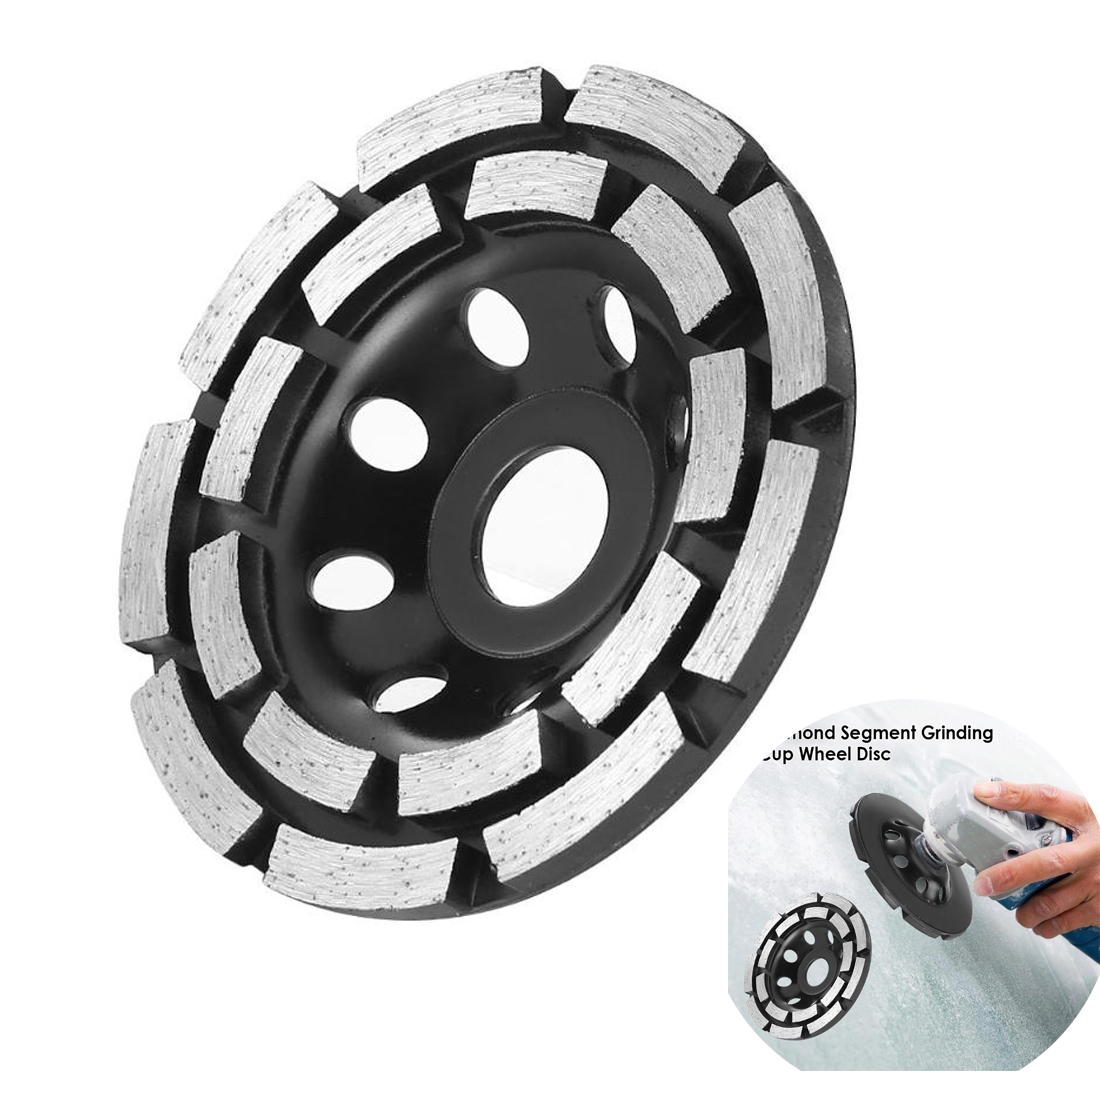 115/125/180mm Diamond Grinding Disc Abrasives Concrete Tools Grinder Wheel Metalworking Cutting Grinding Wheel Cup Saw Blade